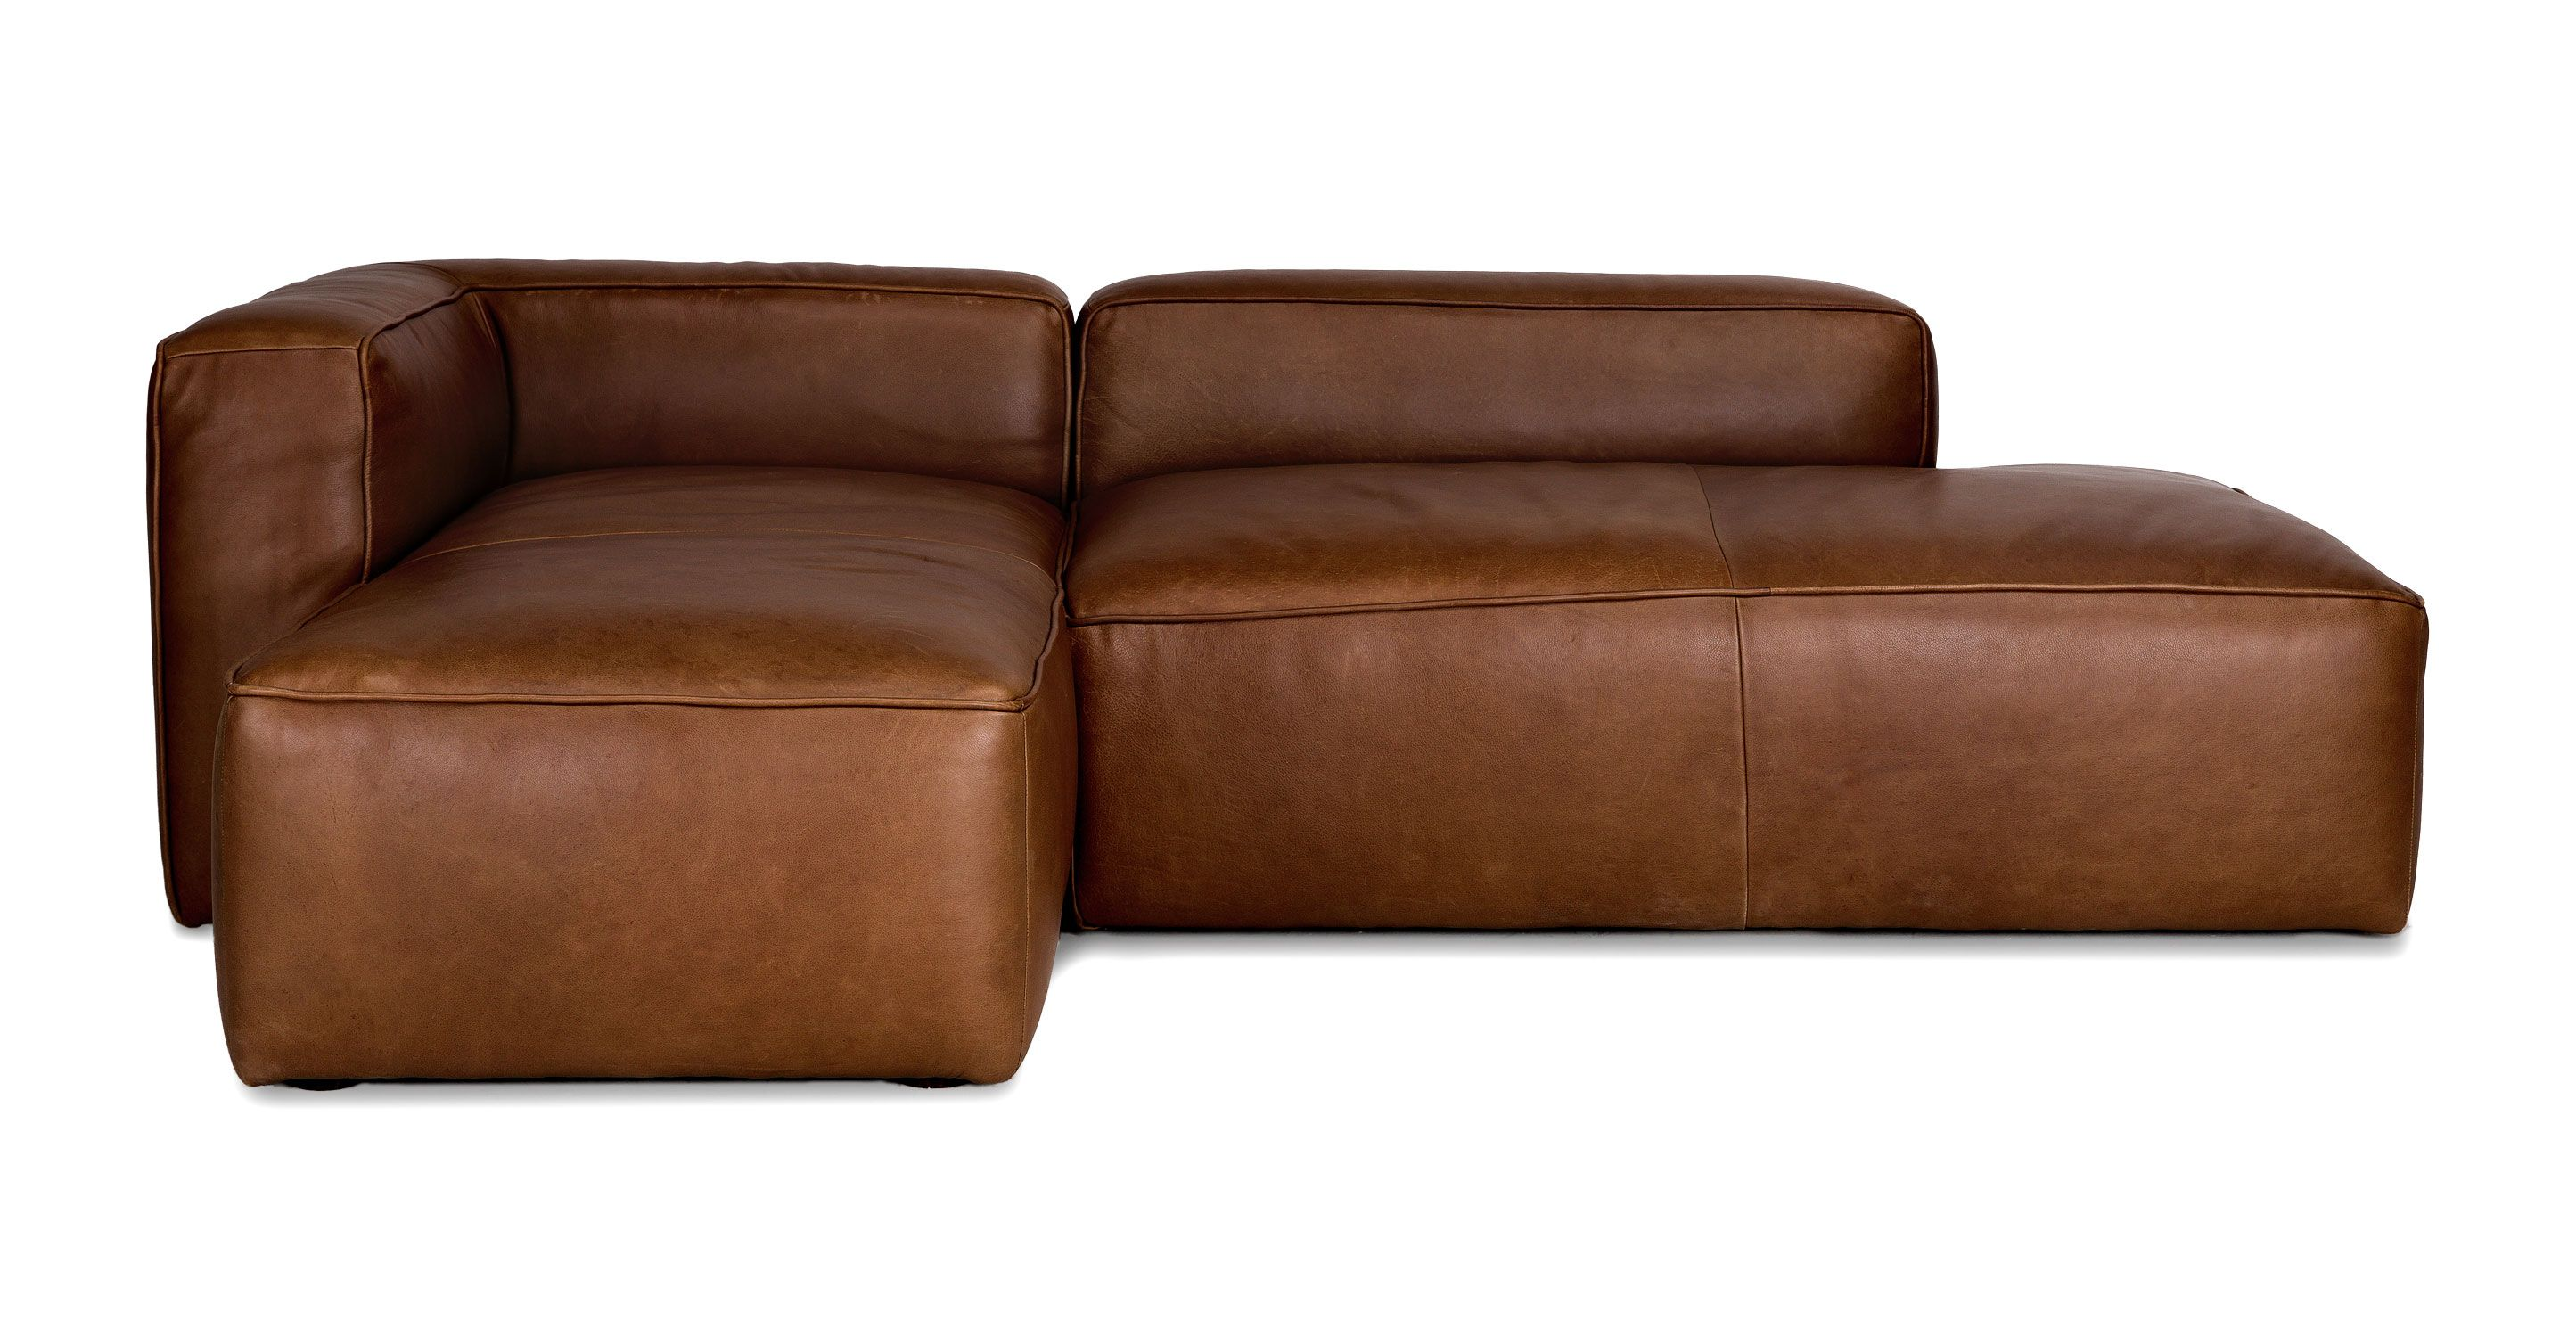 sofasandmore sofa beds houston texas brown leather left sectional upholstered article mello